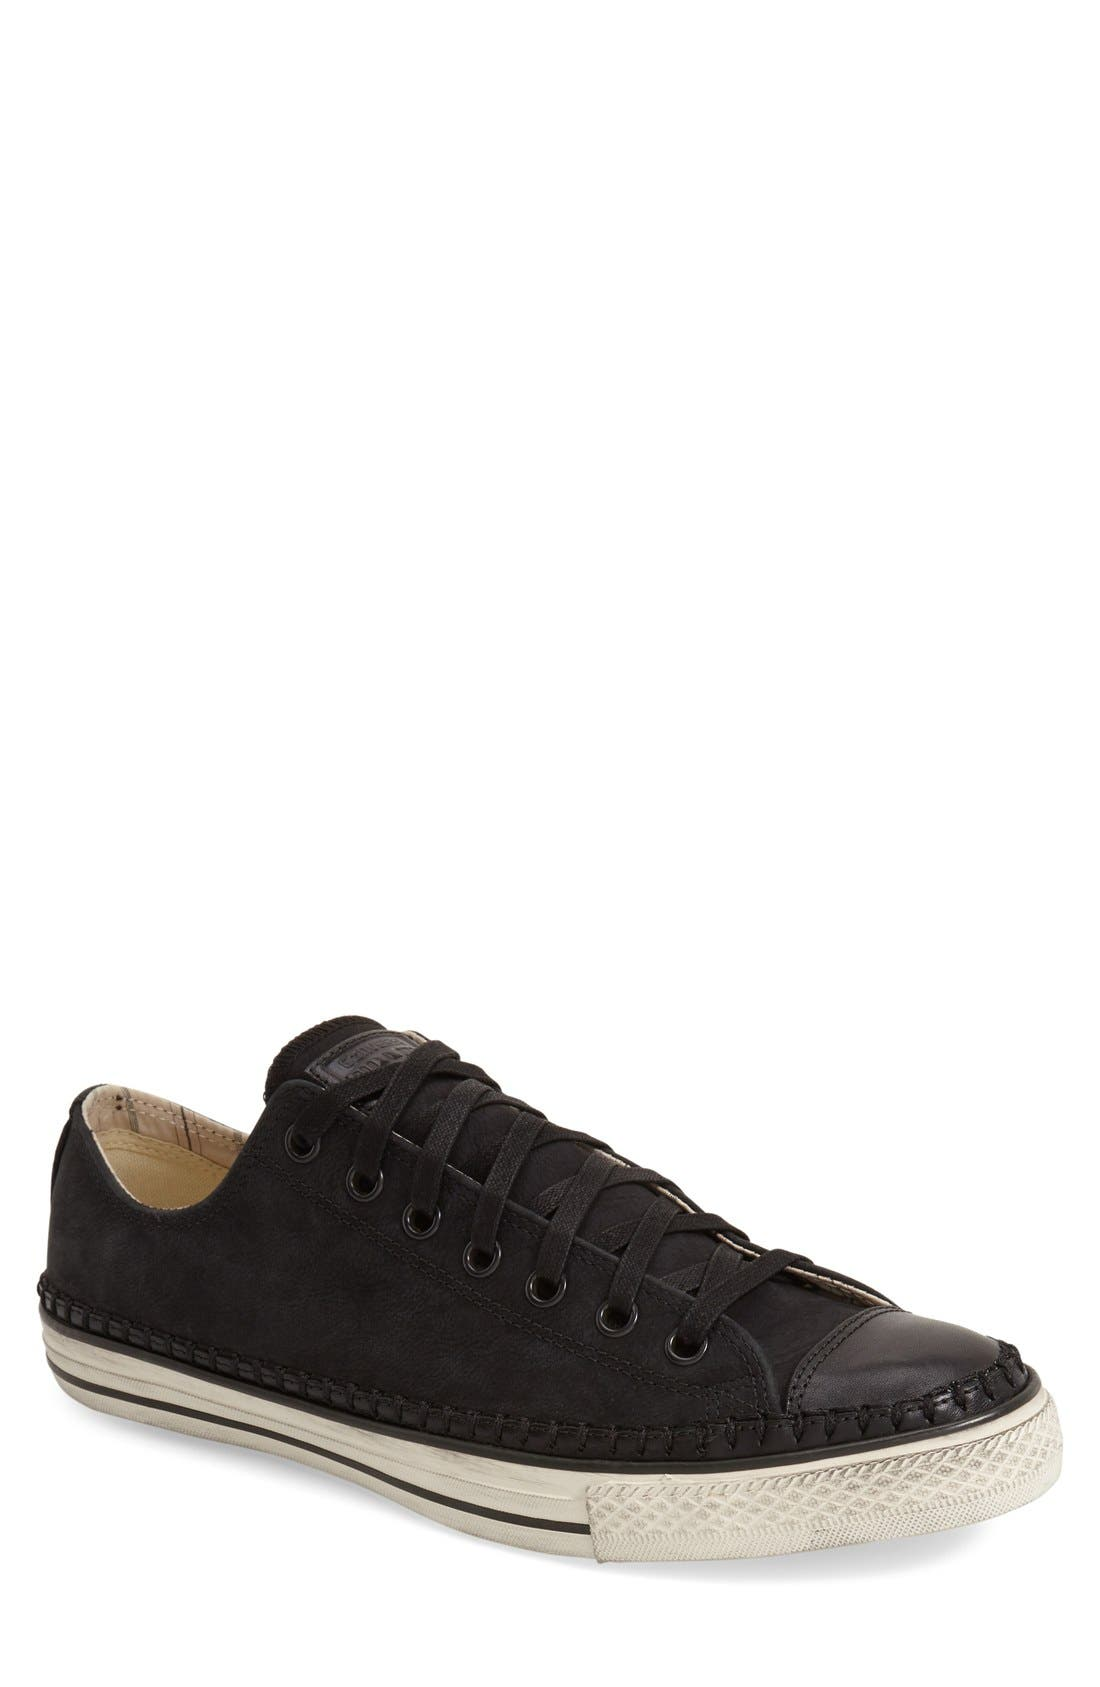 Chuck Taylor<sup>®</sup> All Star<sup>®</sup> Low-Top Sneaker, Main, color, 001